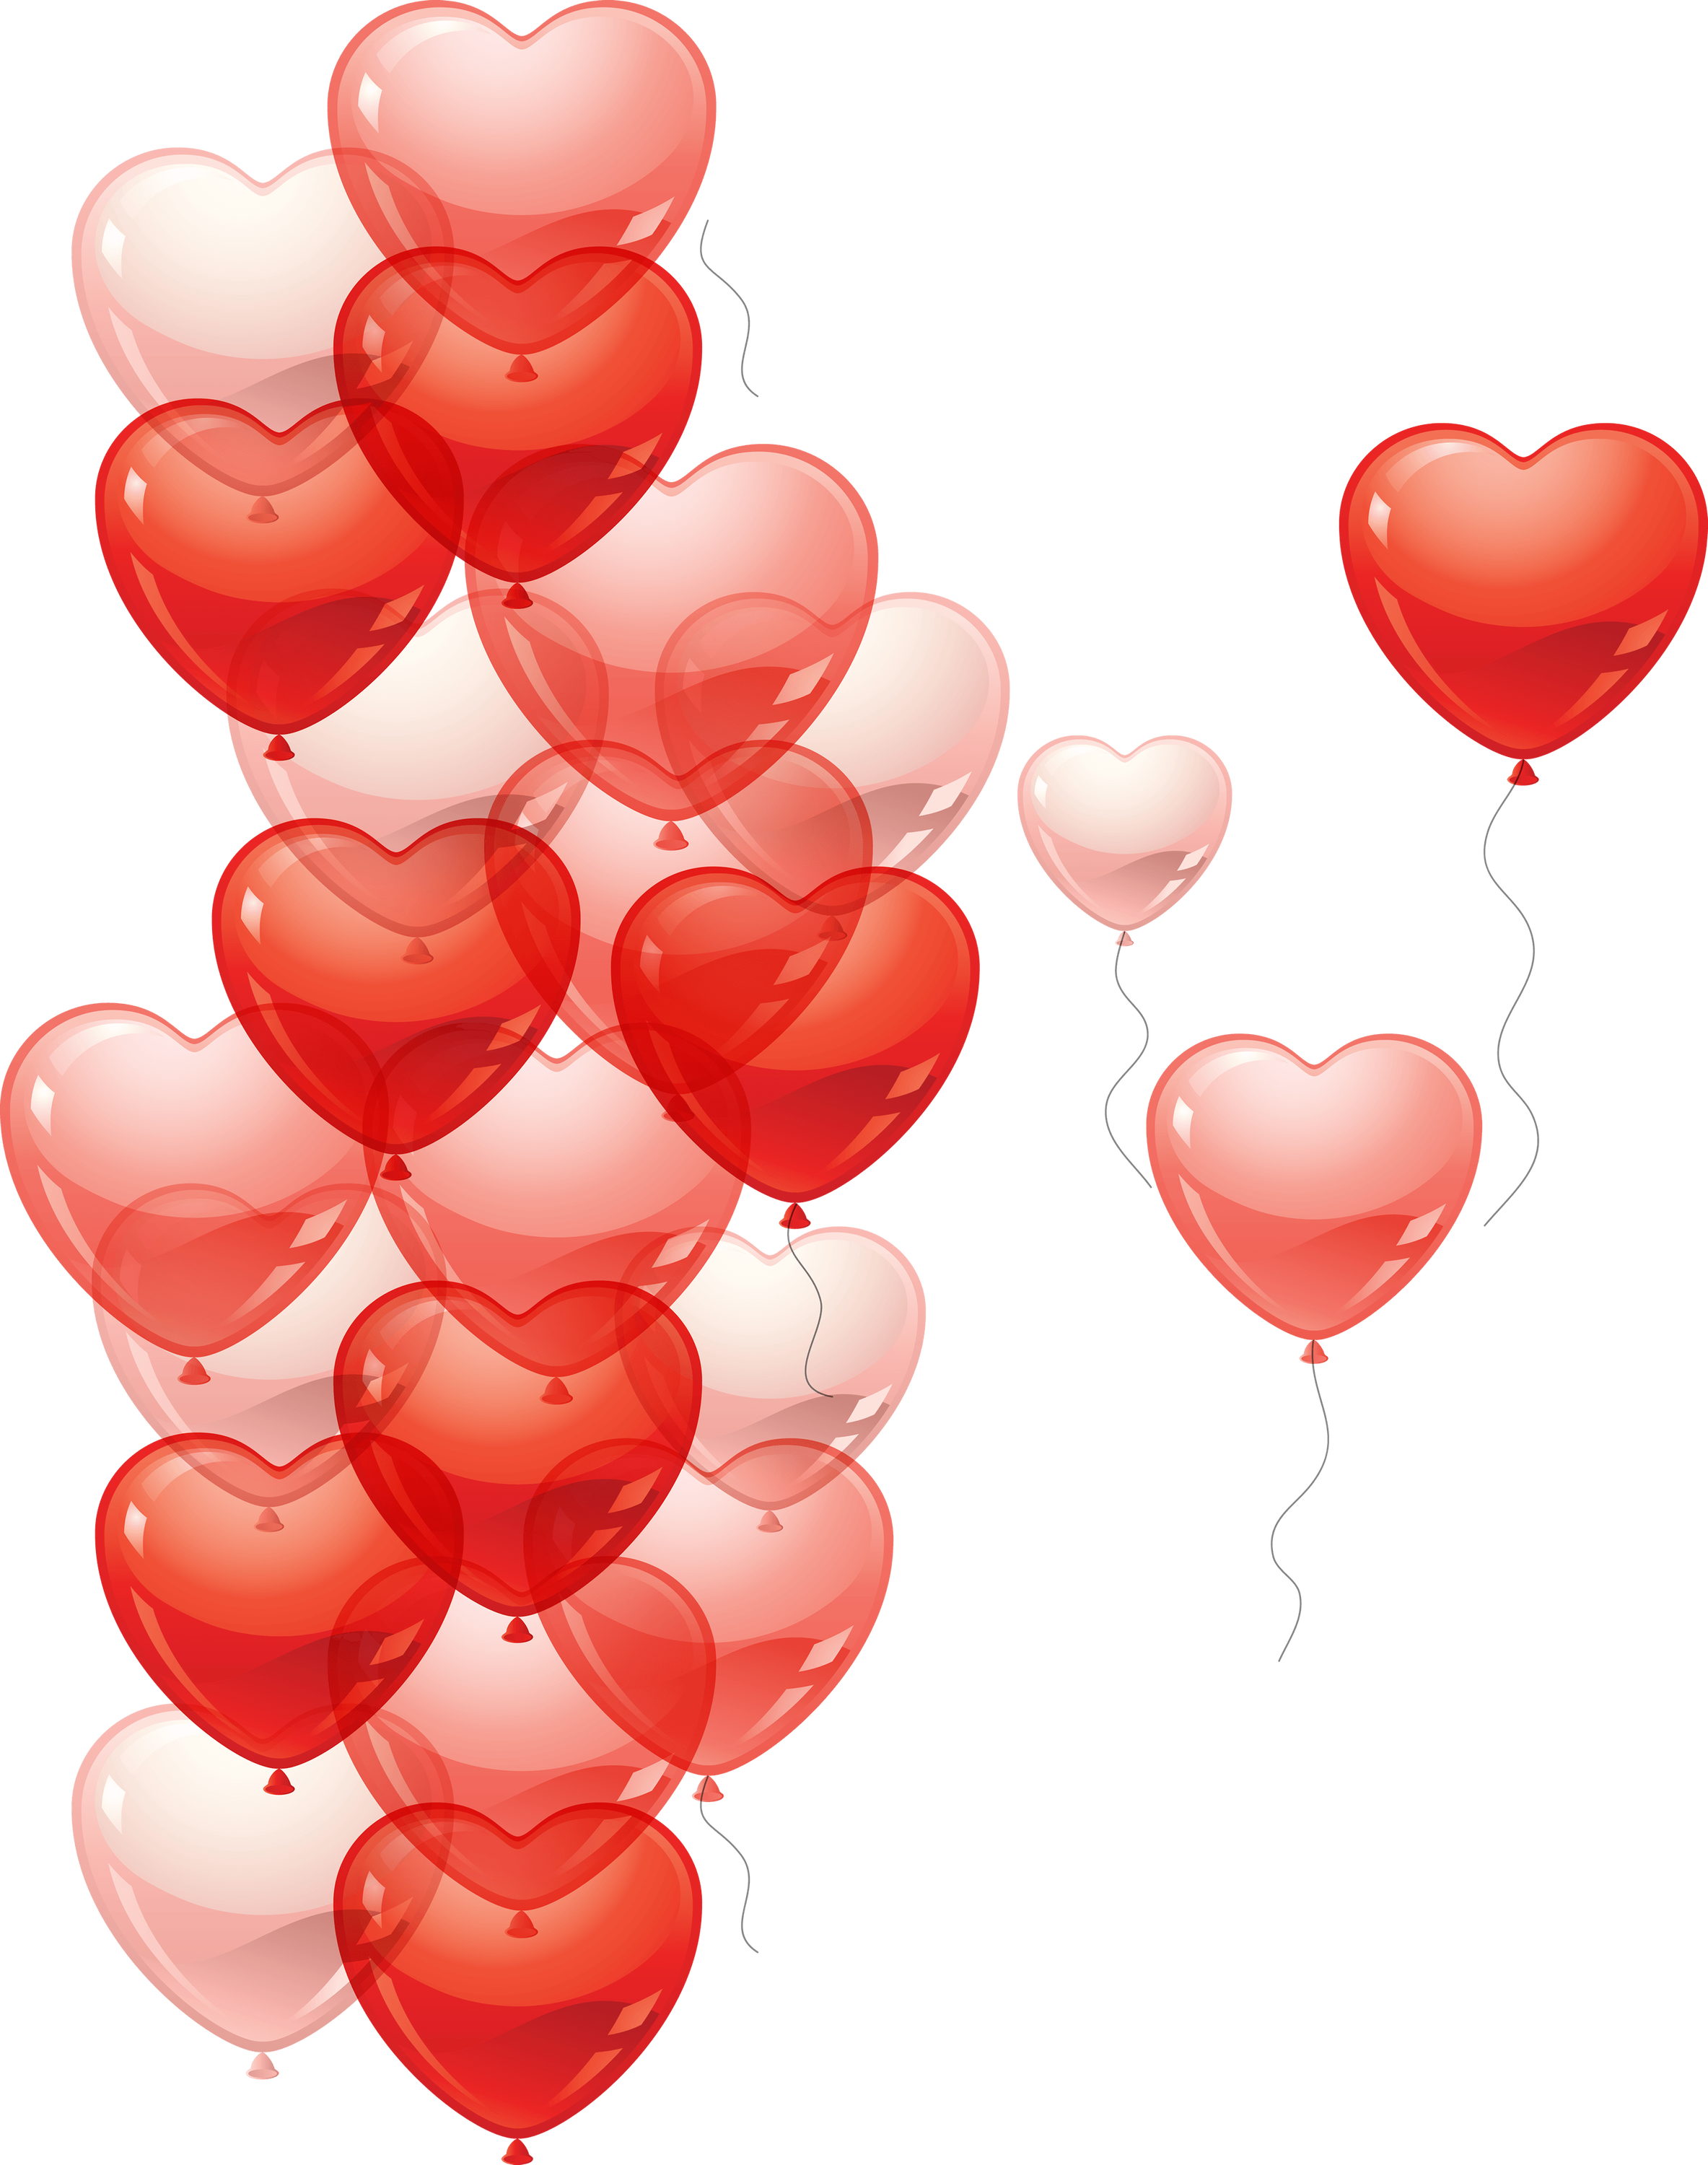 Heart balloon clipart clipart royalty free download Heart Balloon transparent PNG - StickPNG clipart royalty free download